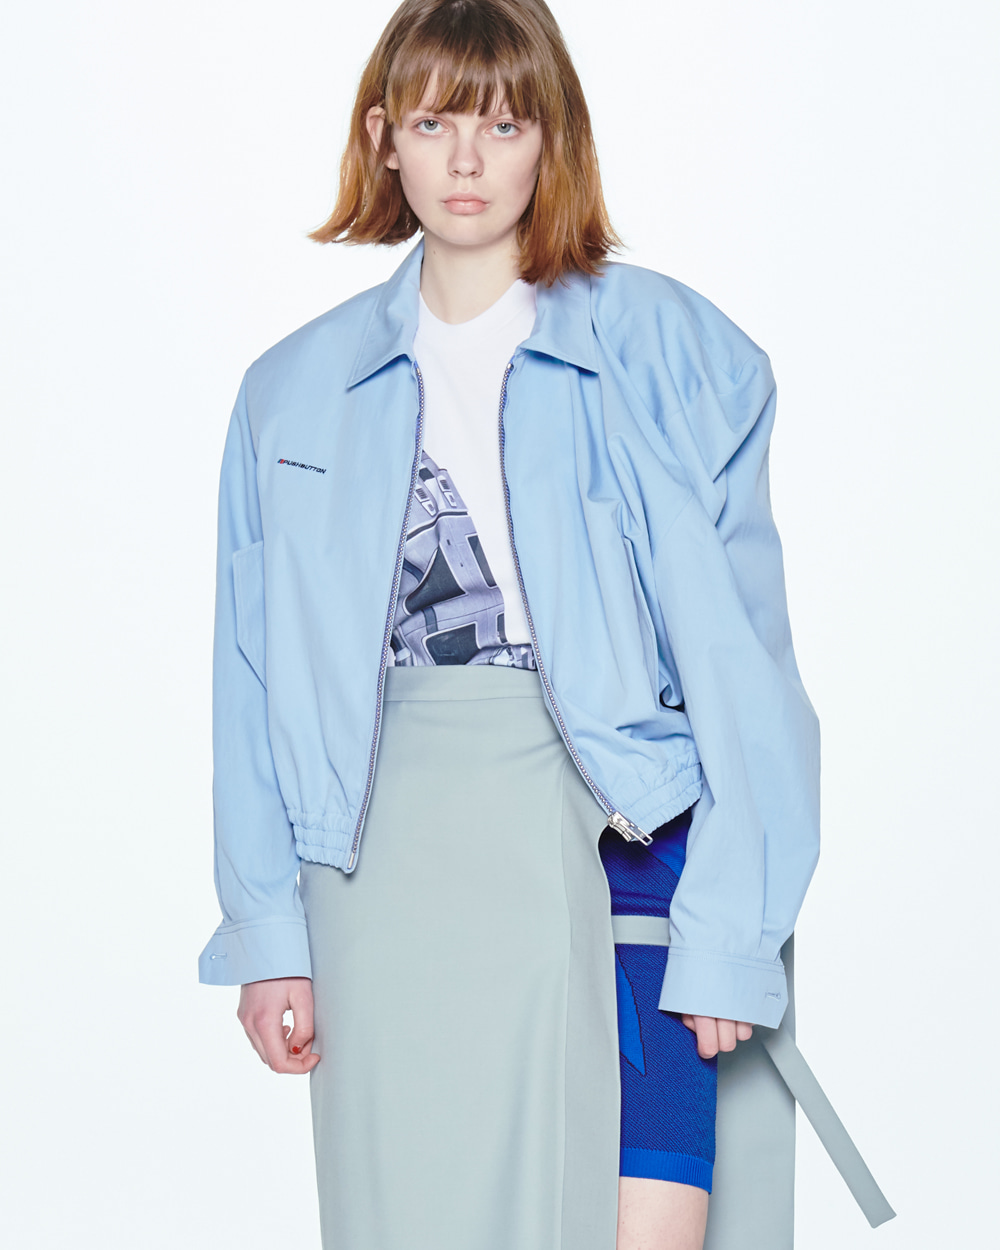 SS20 UNBALANCED SHOULDER BLUE JUMPER